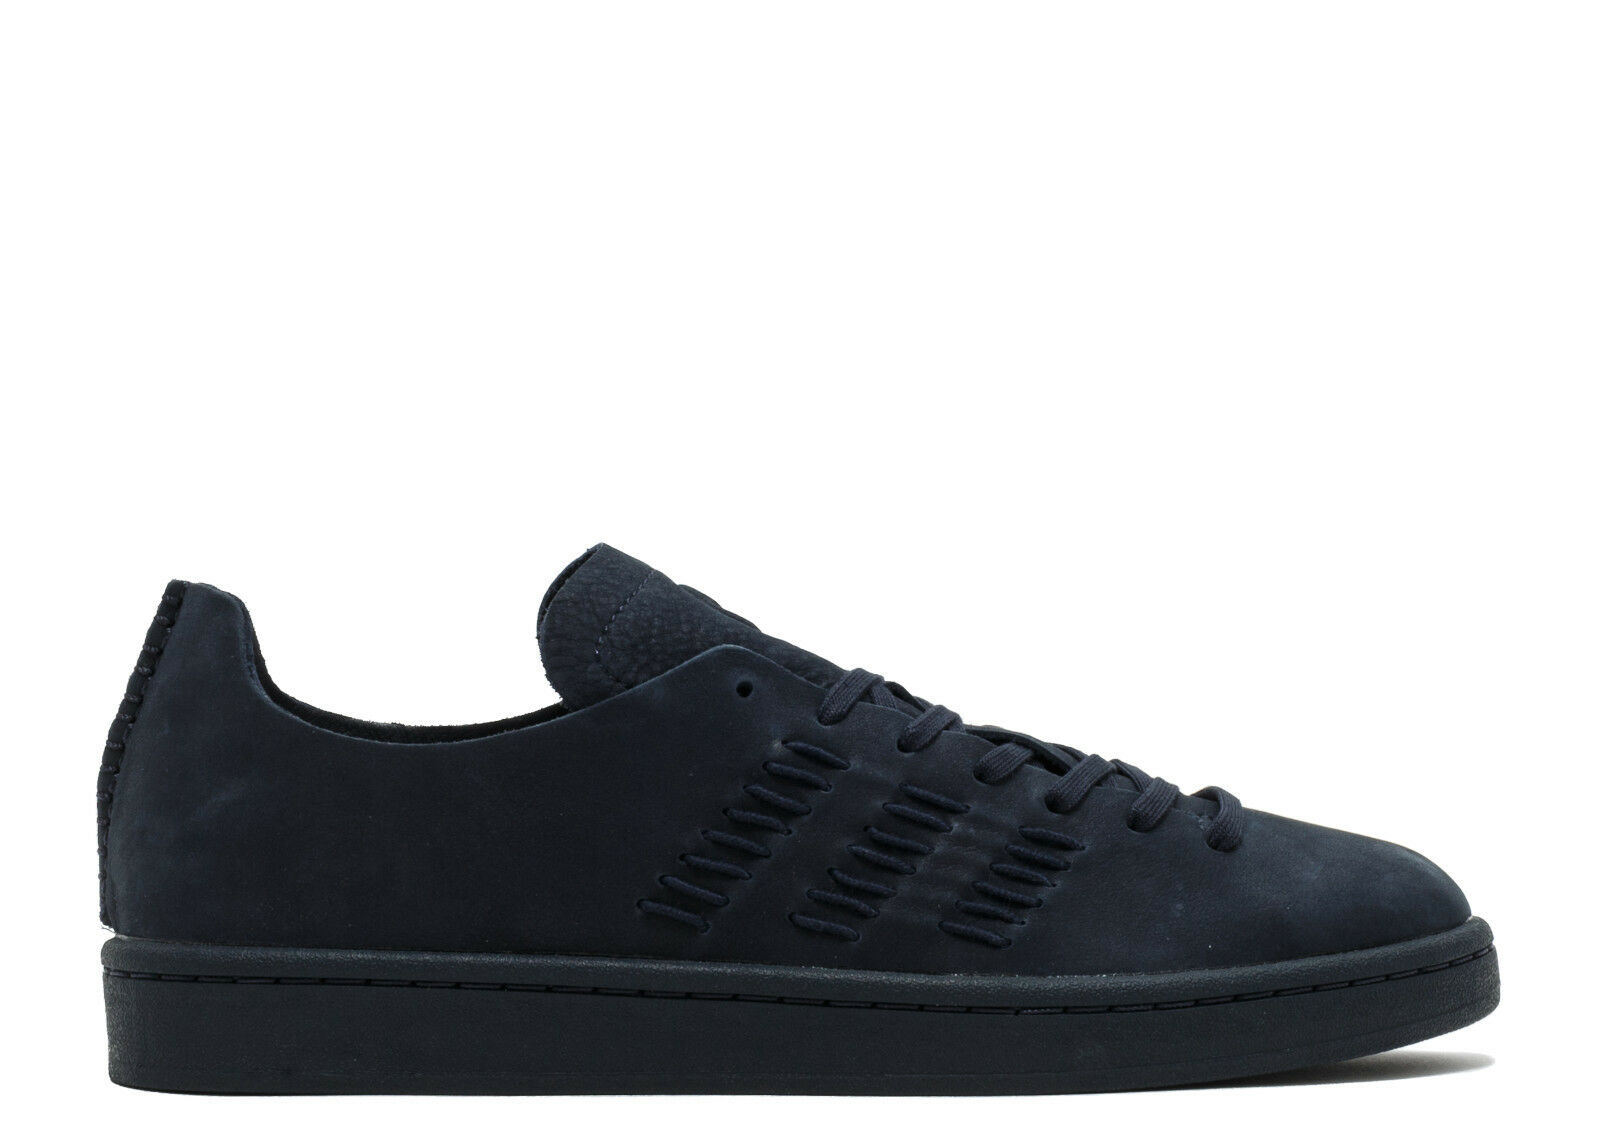 Men's Brand New Adidas WH Campus Athletic Fashion Design Wear Sneakers [BB3115]